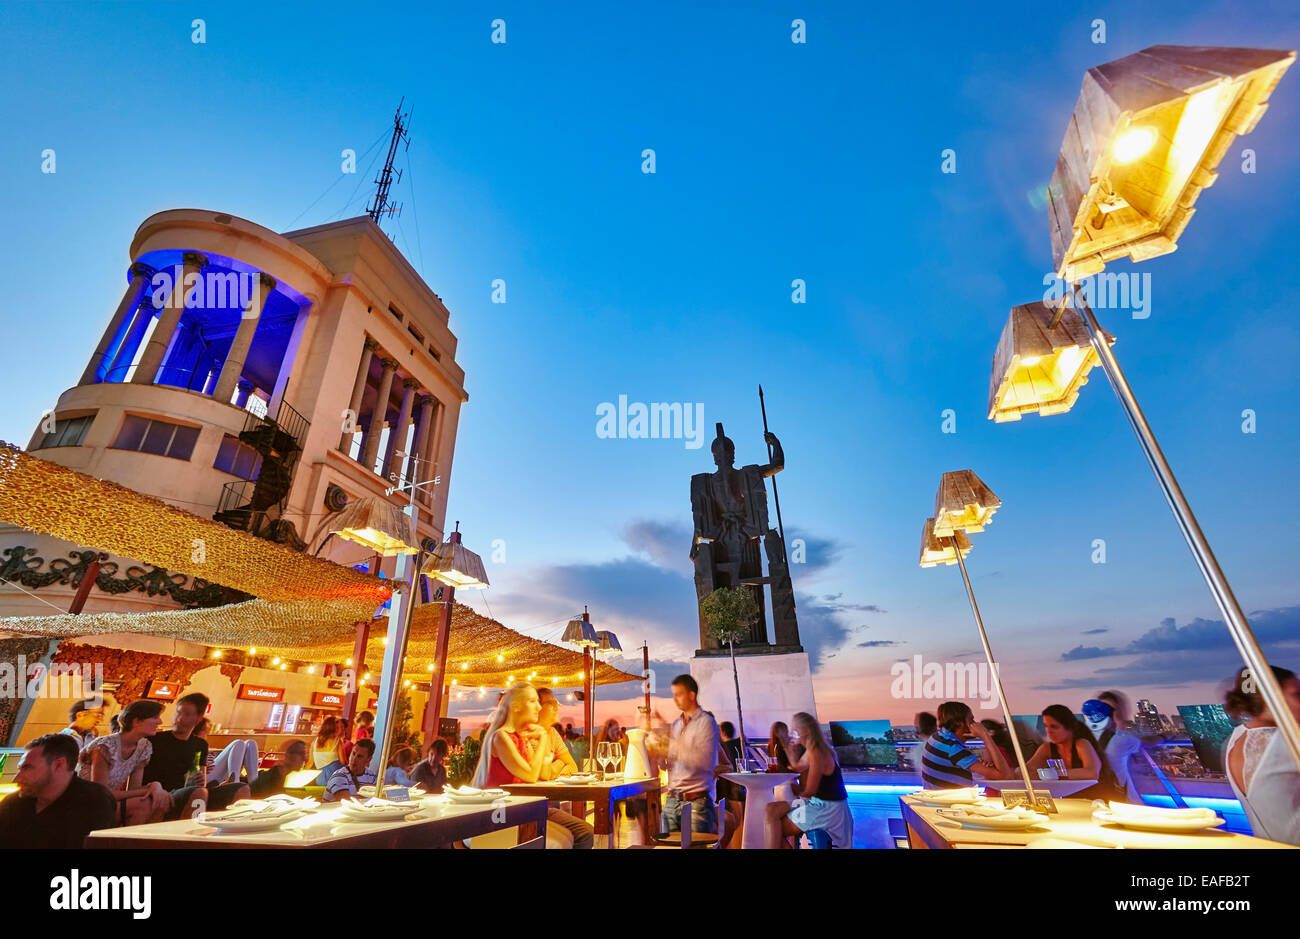 People at the sunset fromThe Circulo de Bellas artes cultural center rooftop terrace. Madrid. Spain - Stock Image